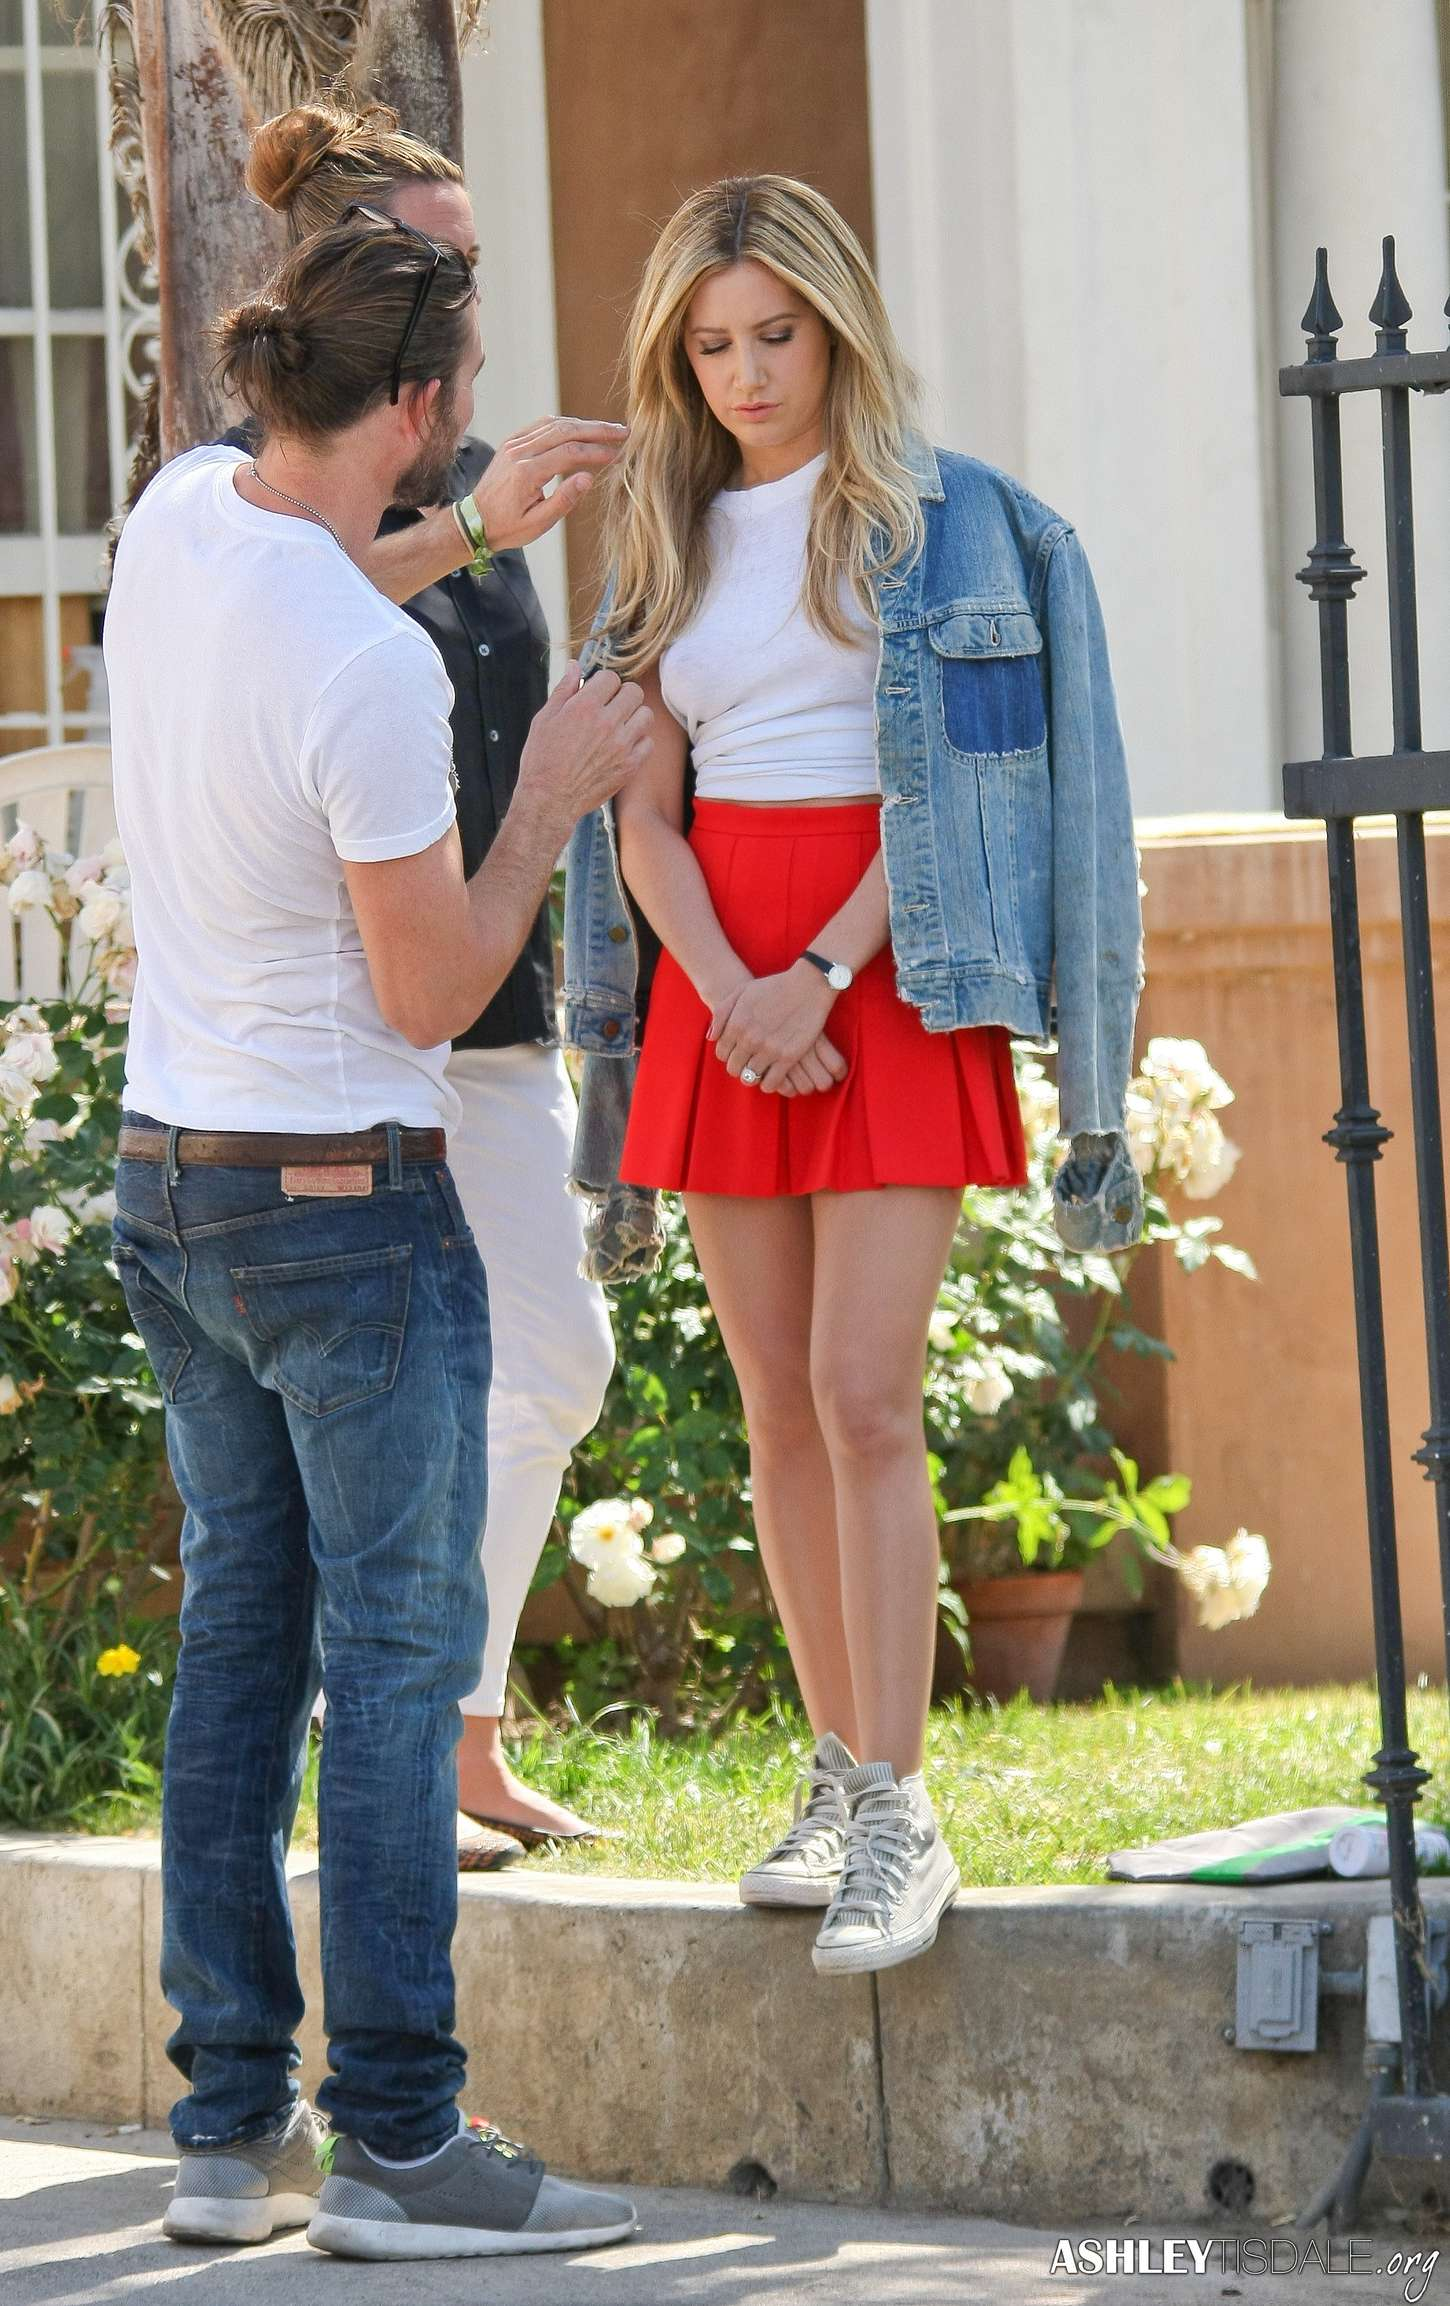 Ashley Tisdale legs in mini skirt-13 - GotCeleb